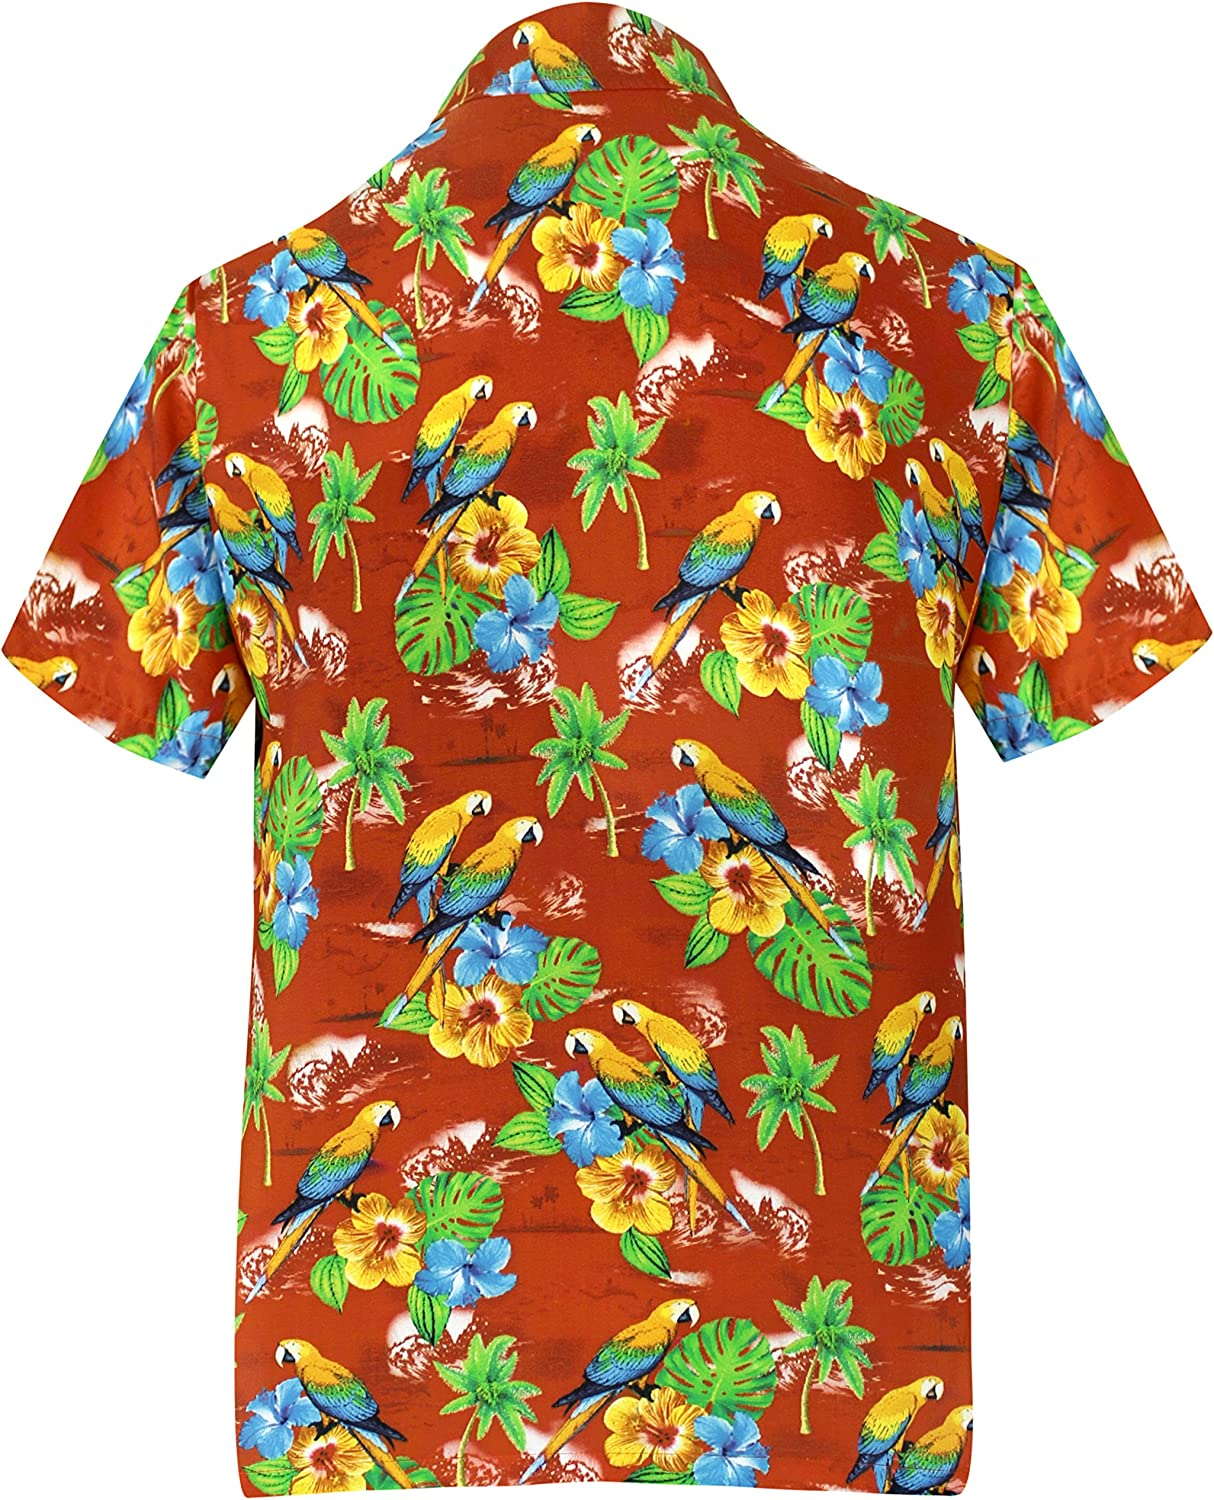 LA LEELA Mens Regular Fit Hawaiian Shirt Beach Aloha Swim Shirt for Men Printed